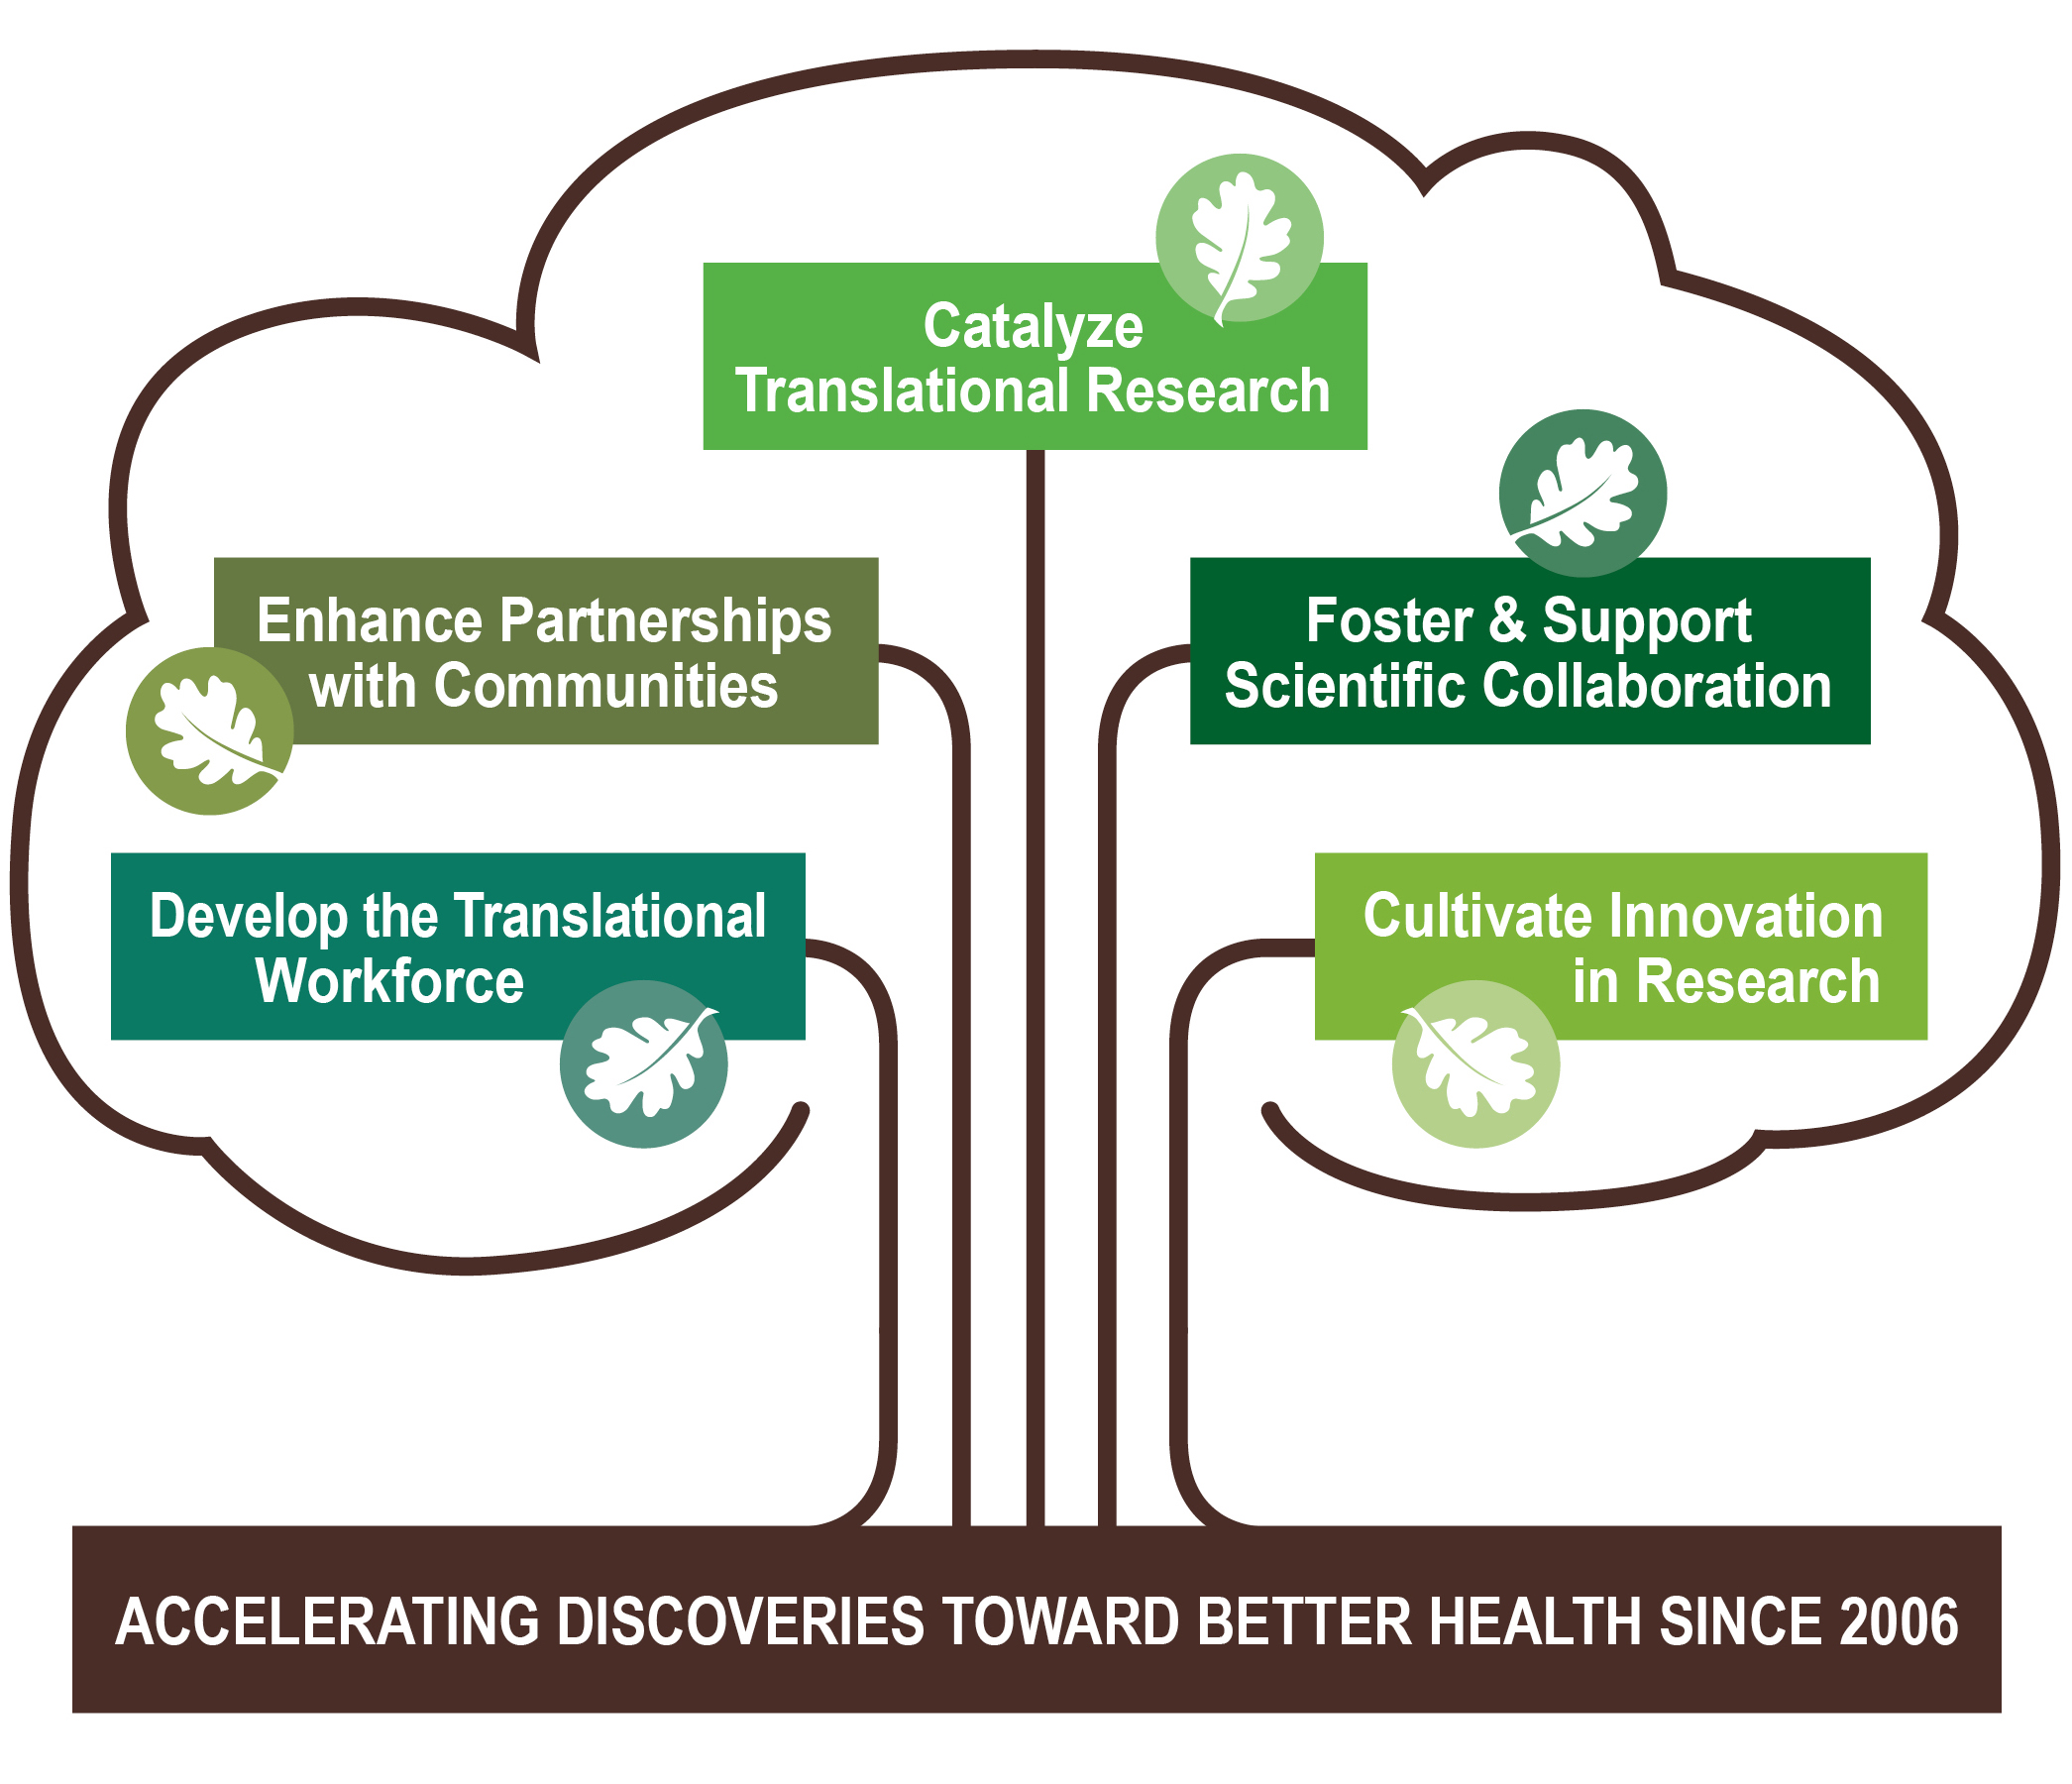 OCTRI strategic goals visualized on a tree.  Strategic goals are: develop the translational workforce enhance partnerships with communities, catalyze translational research, foster & support scientific collaboration, and cultivate innovation in research.  OCTRI has been accelerating discoveries toward better health since 2006.